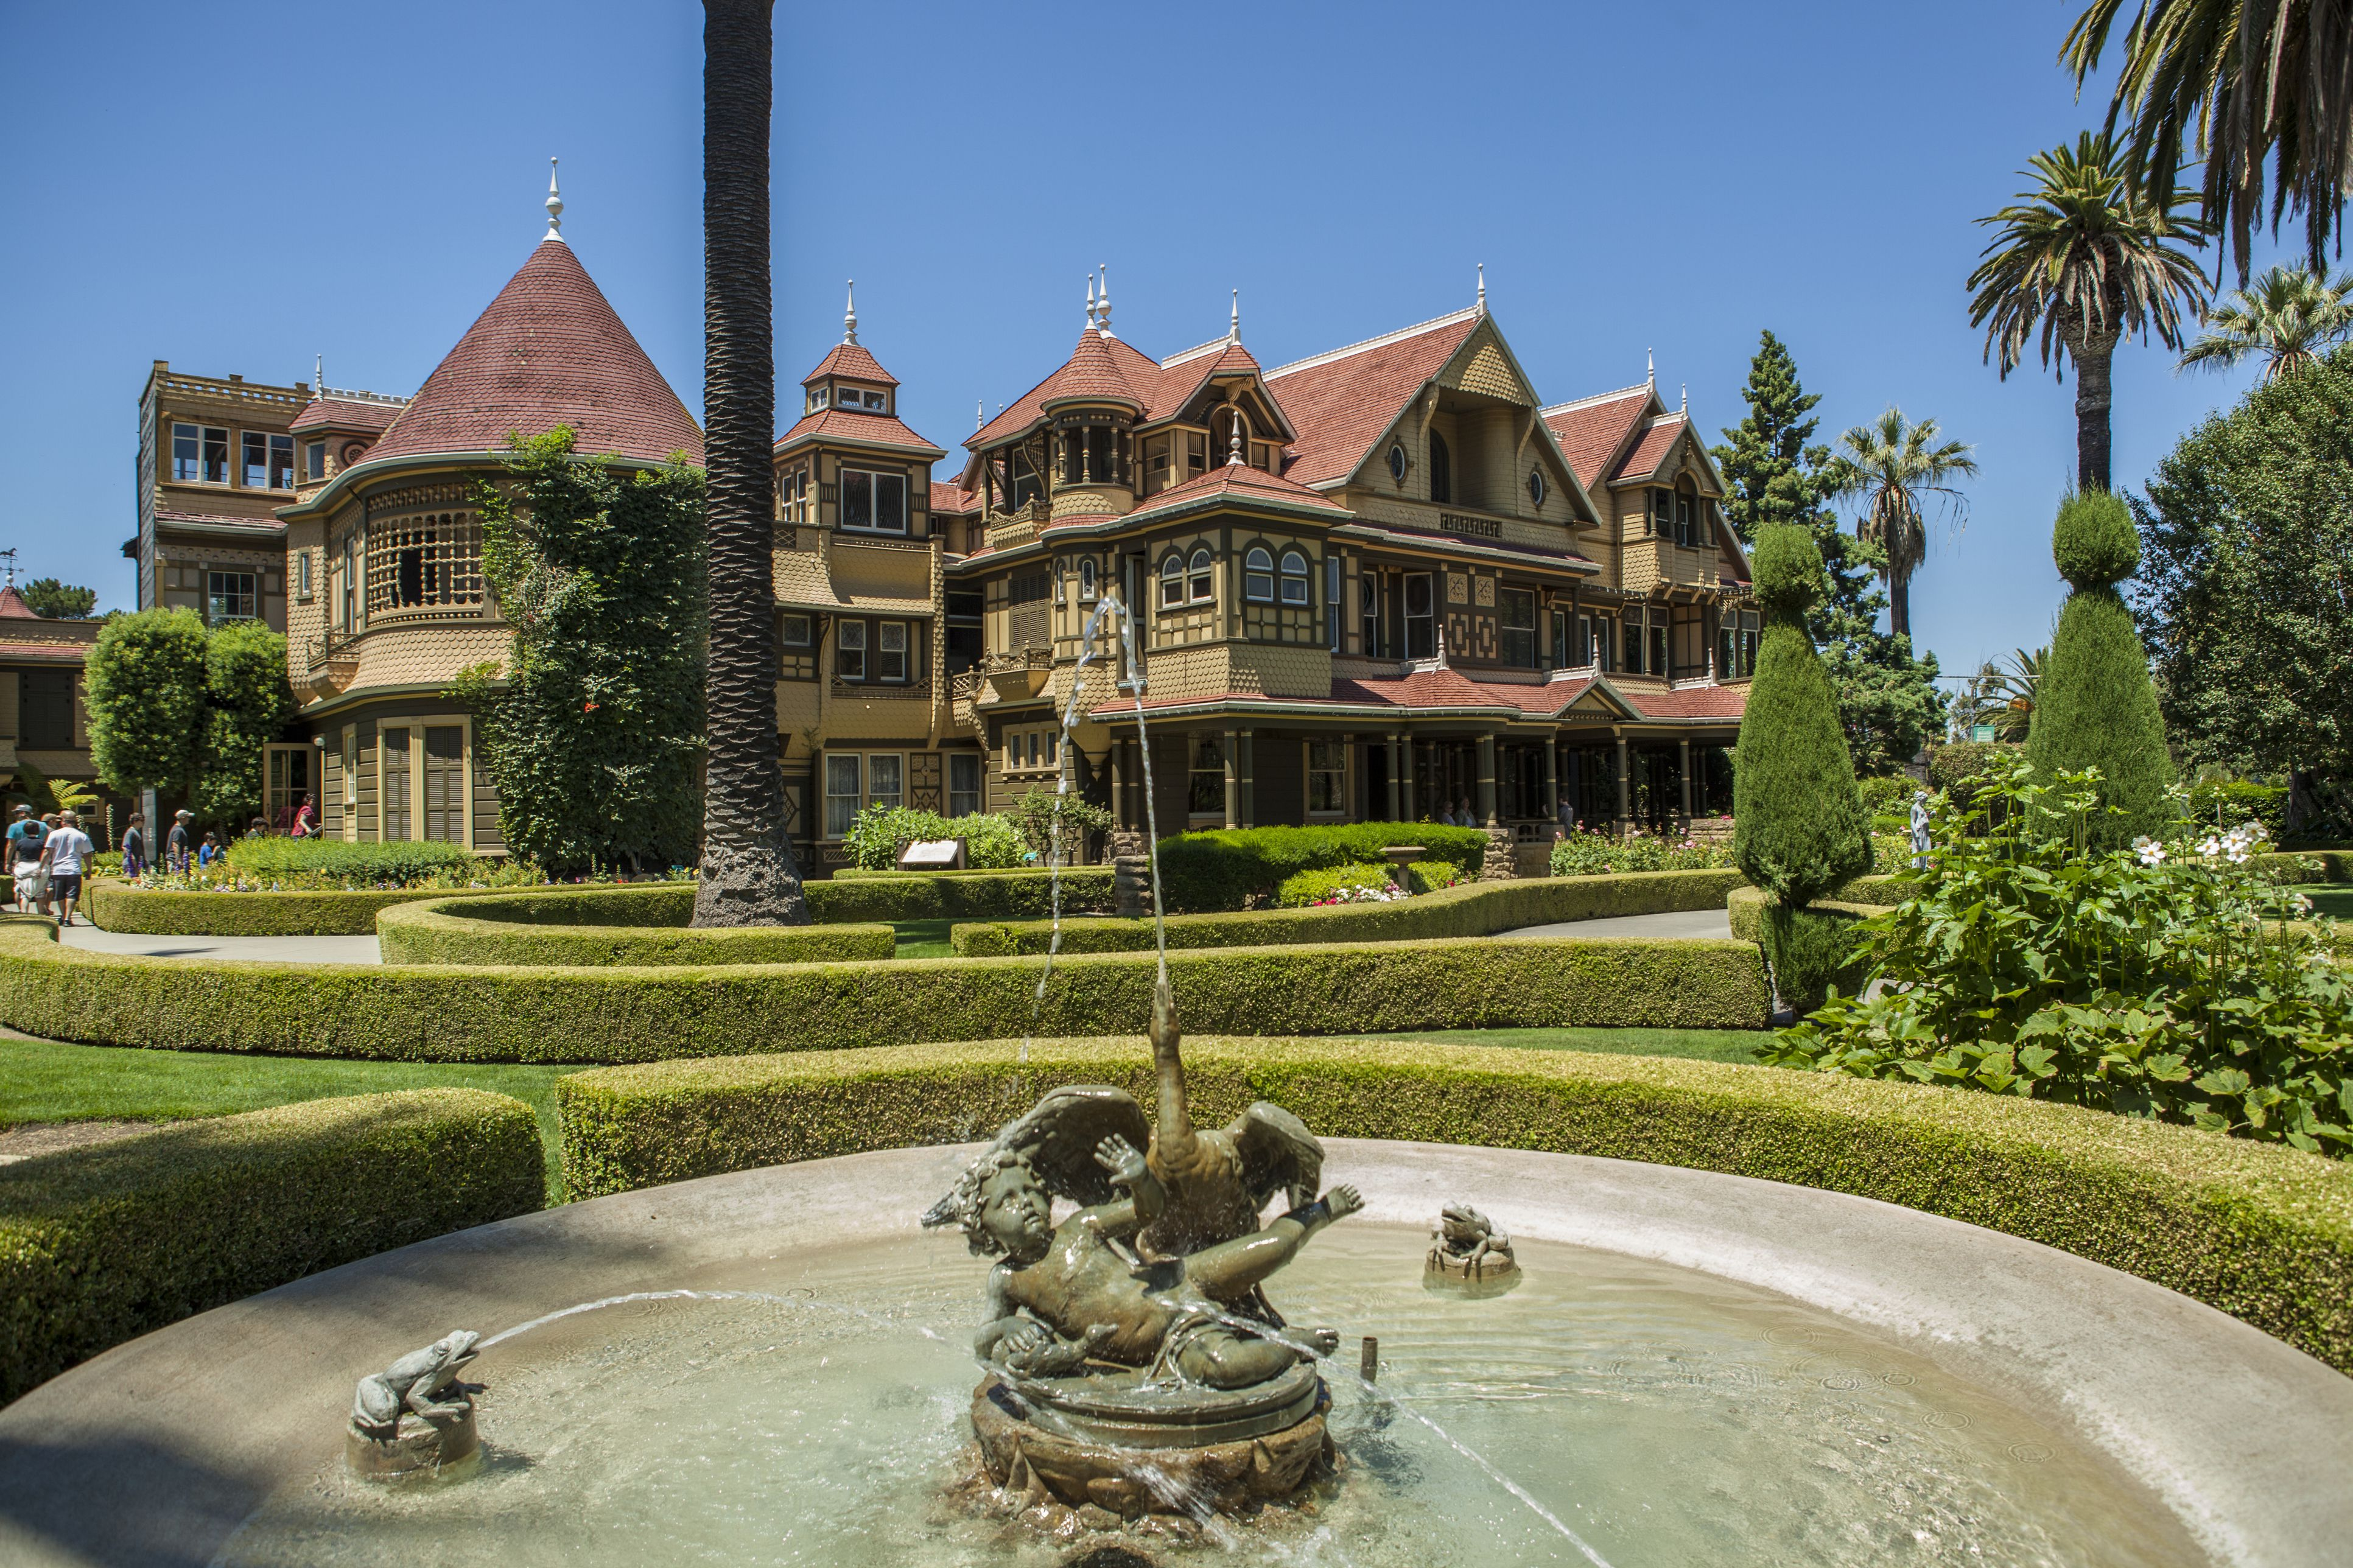 winchester mystery house: pictures - history - tour tips